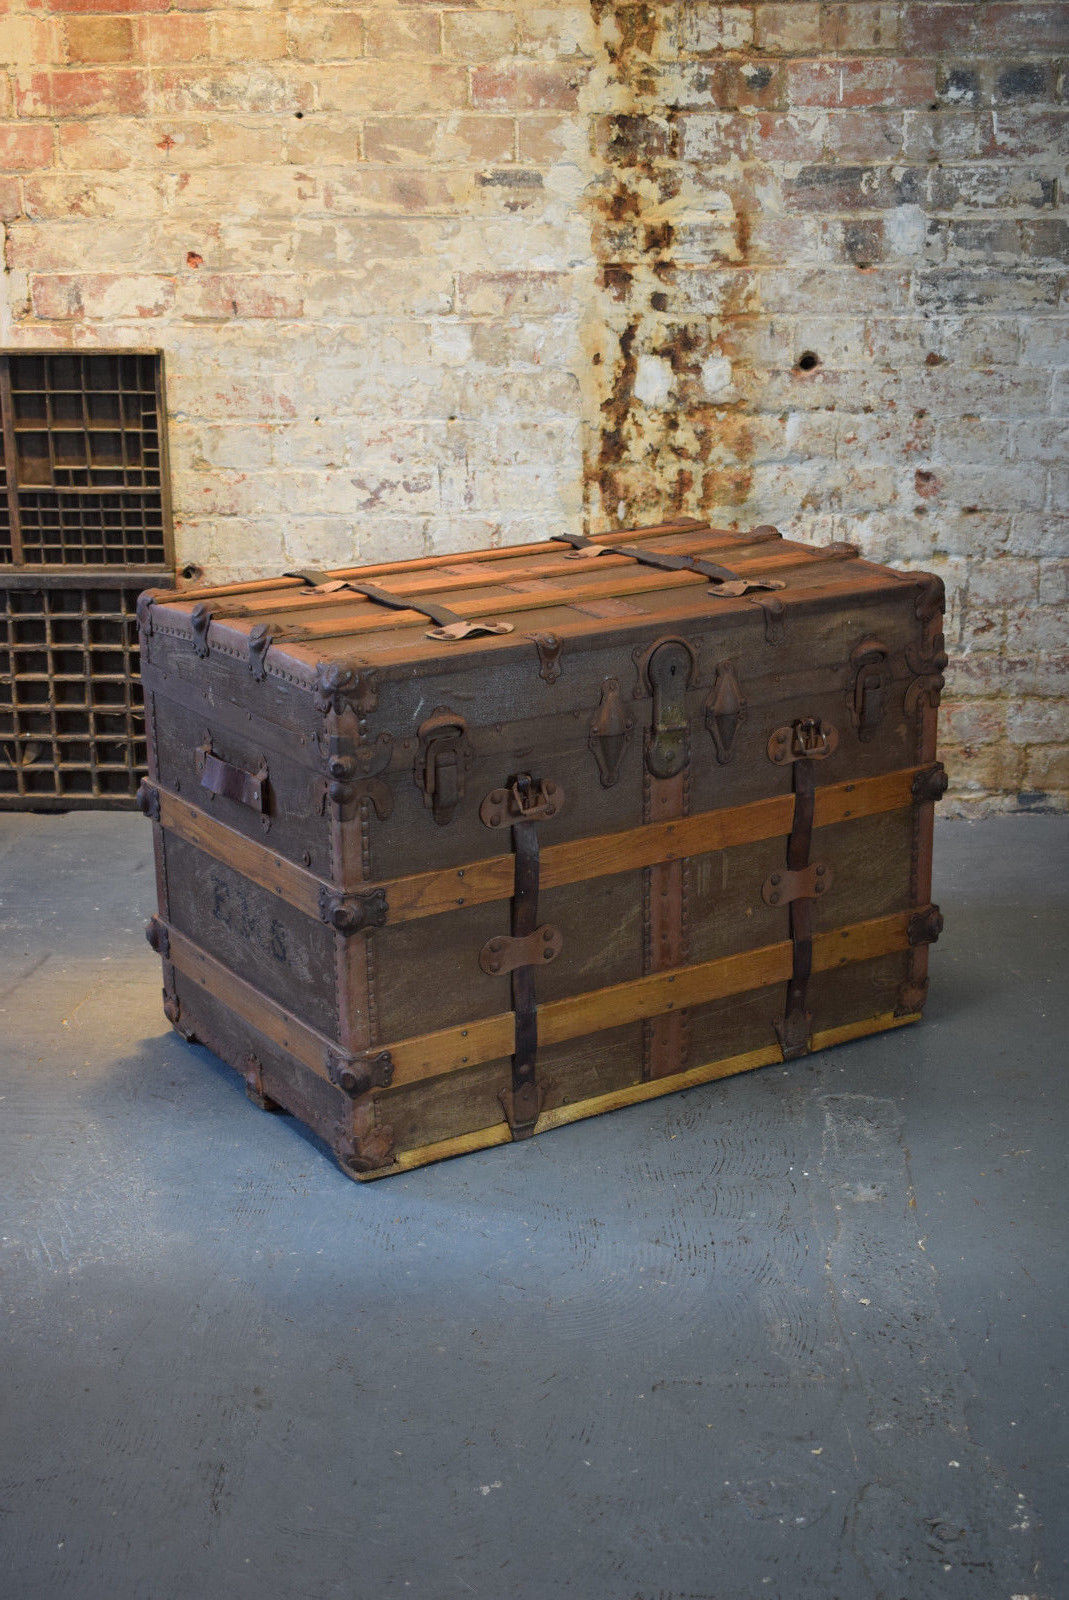 Vintage Travel Trunk Suitcase Large Trunk Coffee Table Blanket Box